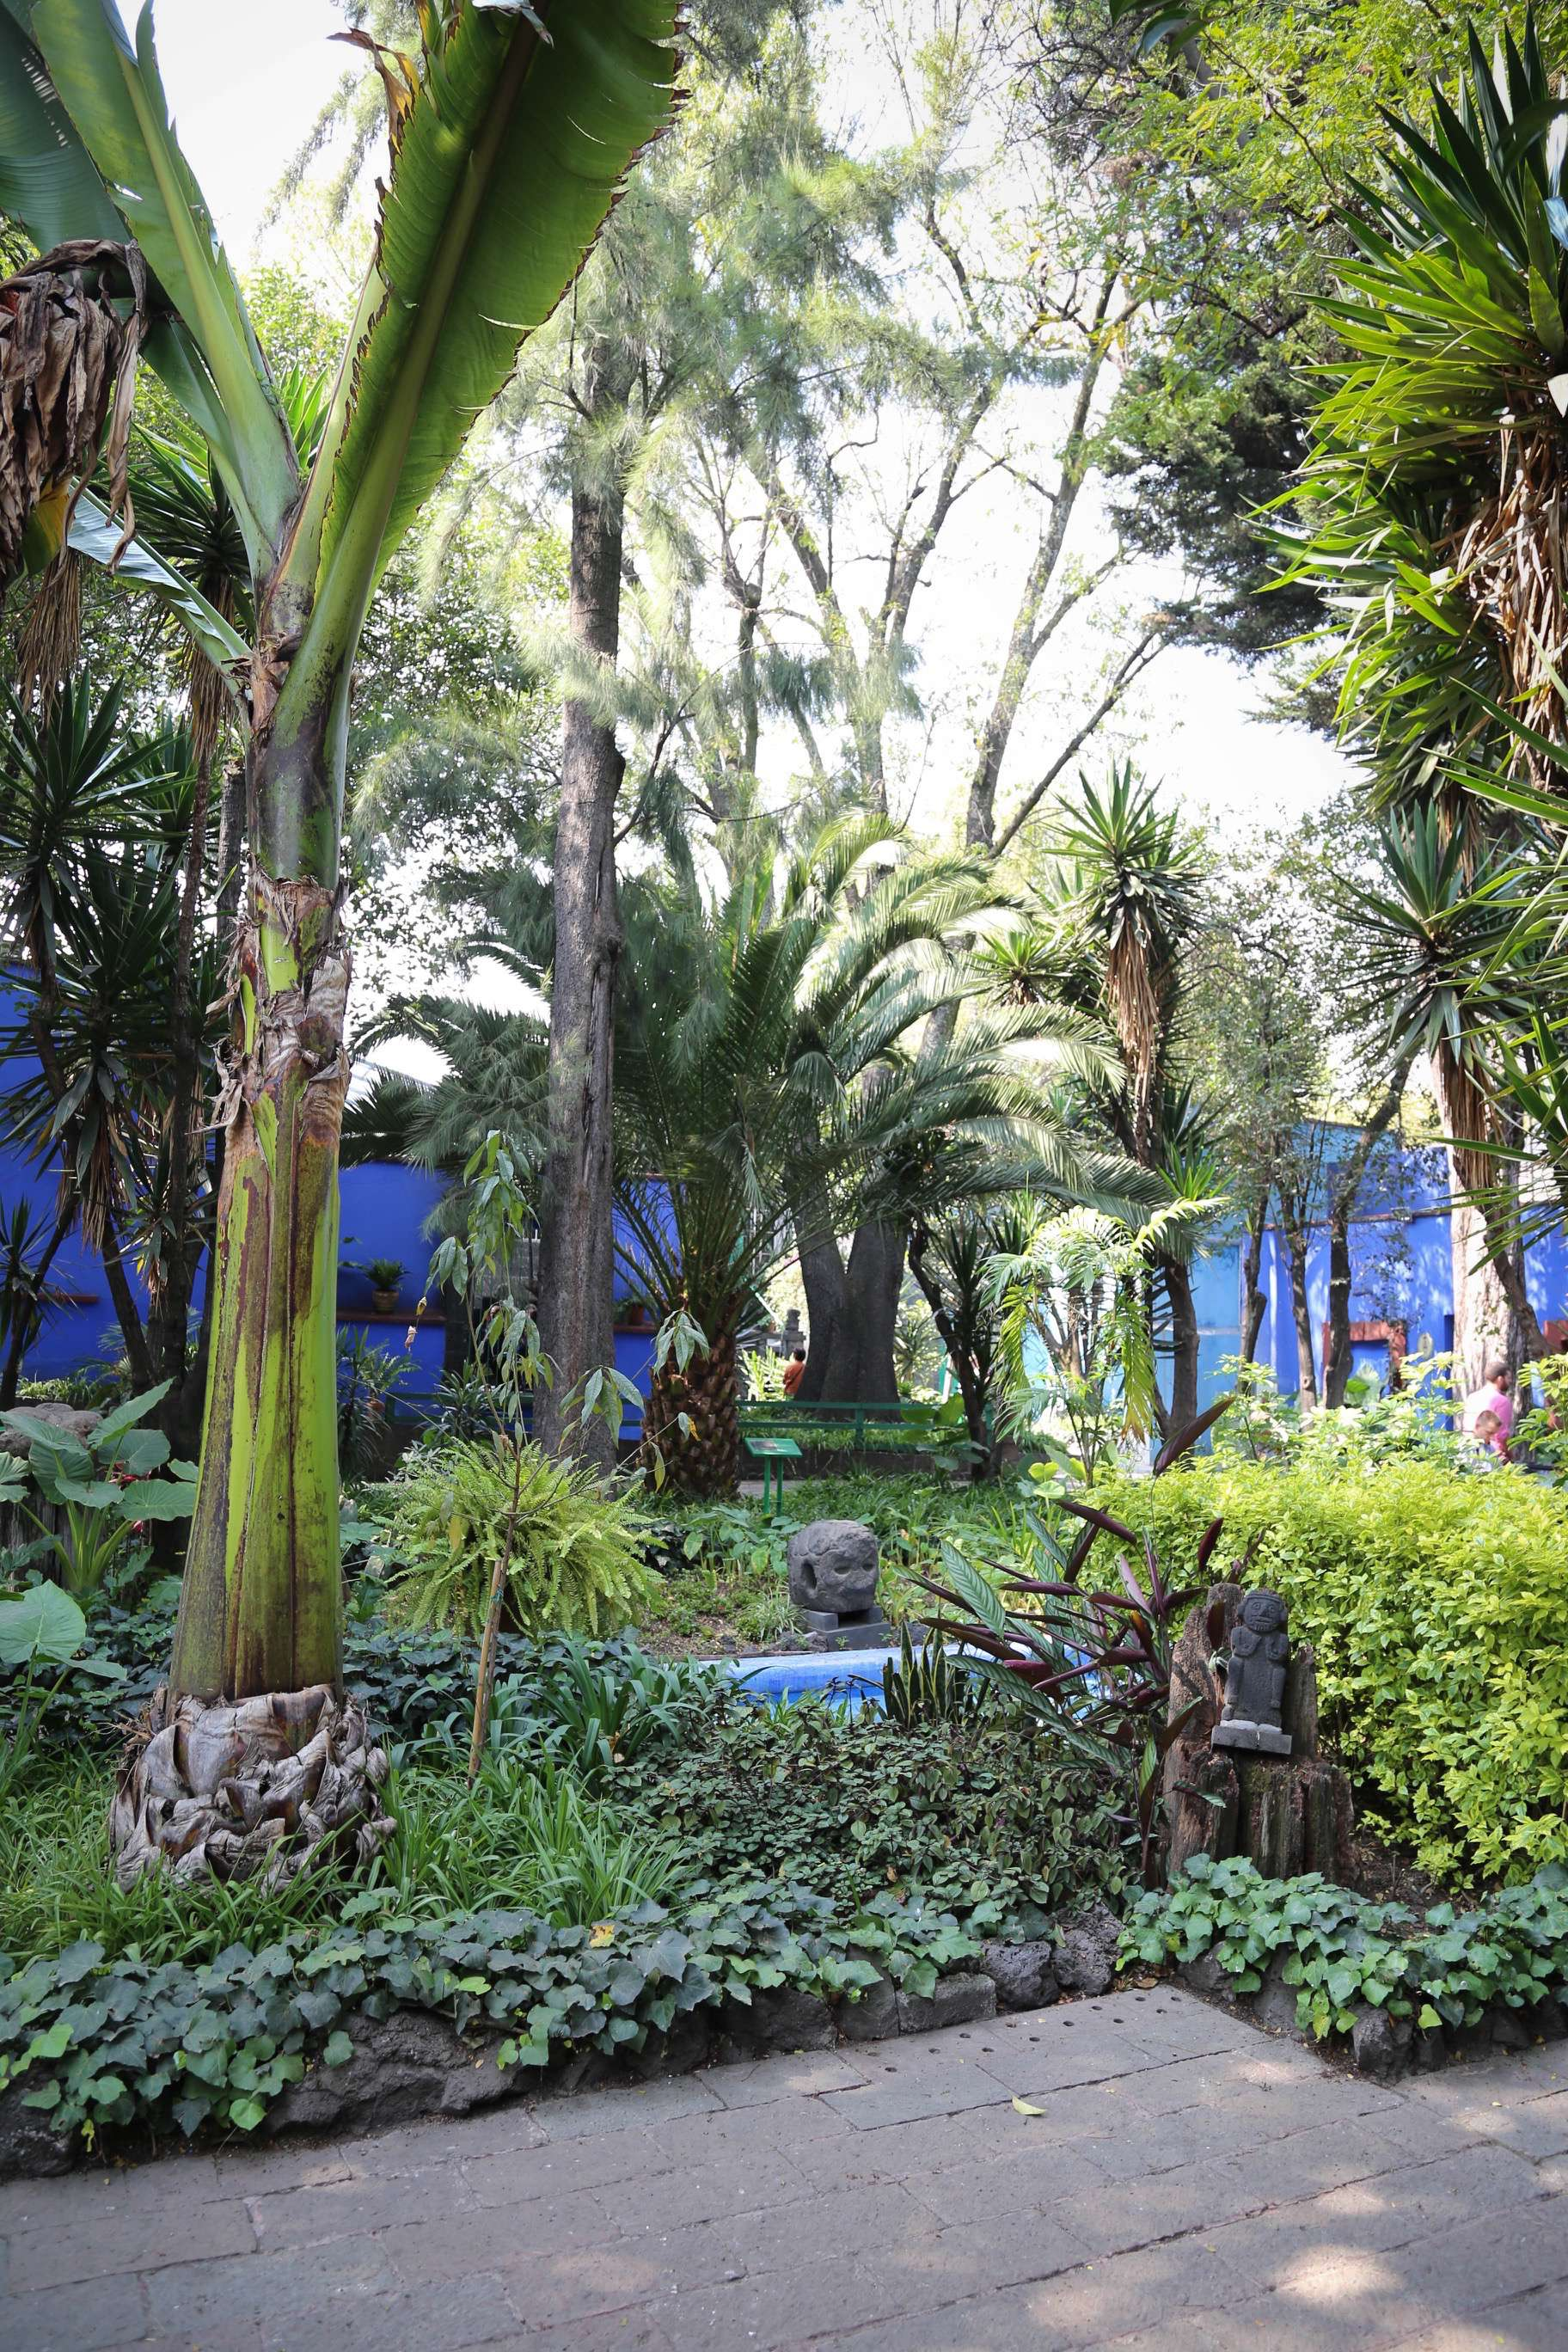 The grounds at Casa Azul are peaceful and inviting.